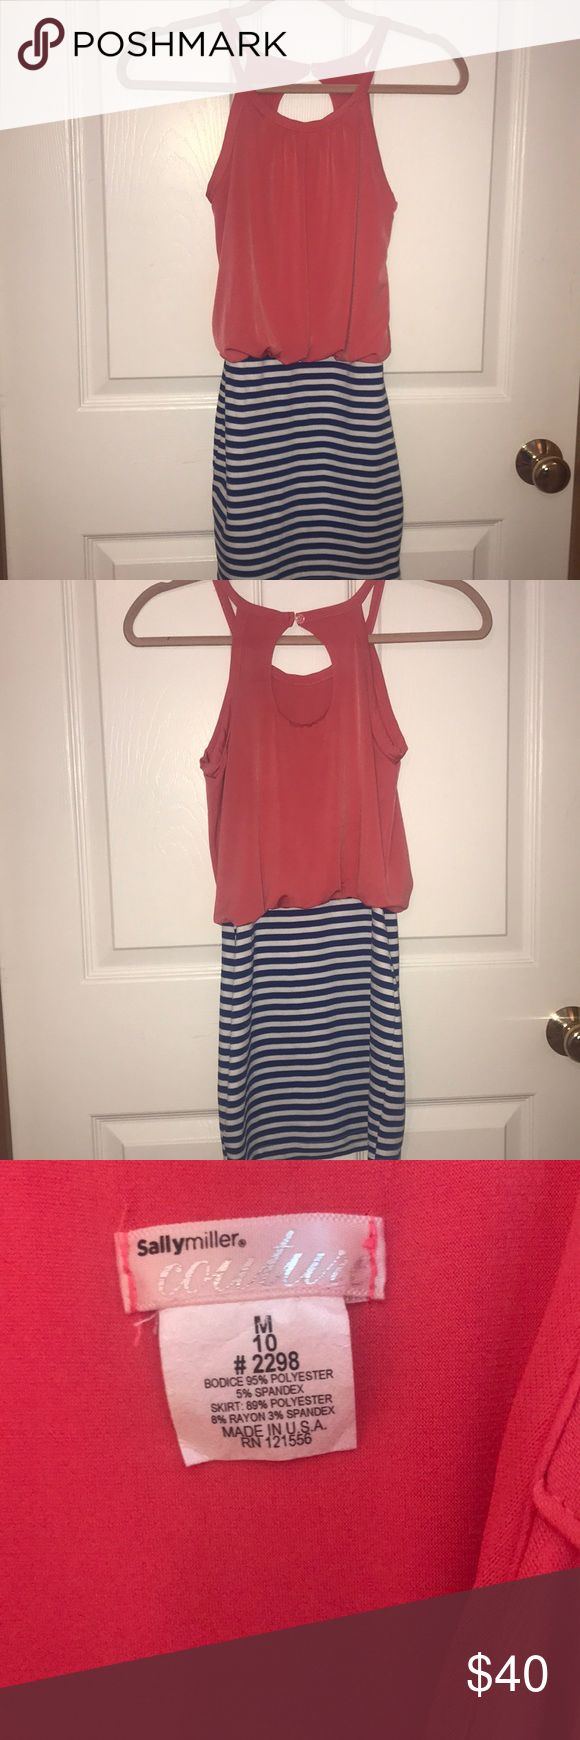 Sally Miller Couture dress with belt Sally Miller Couture dress! Great for the summer and super stylish! In great condition and only worn a few times! Comes with a belt! Sally Miller Dresses Formal